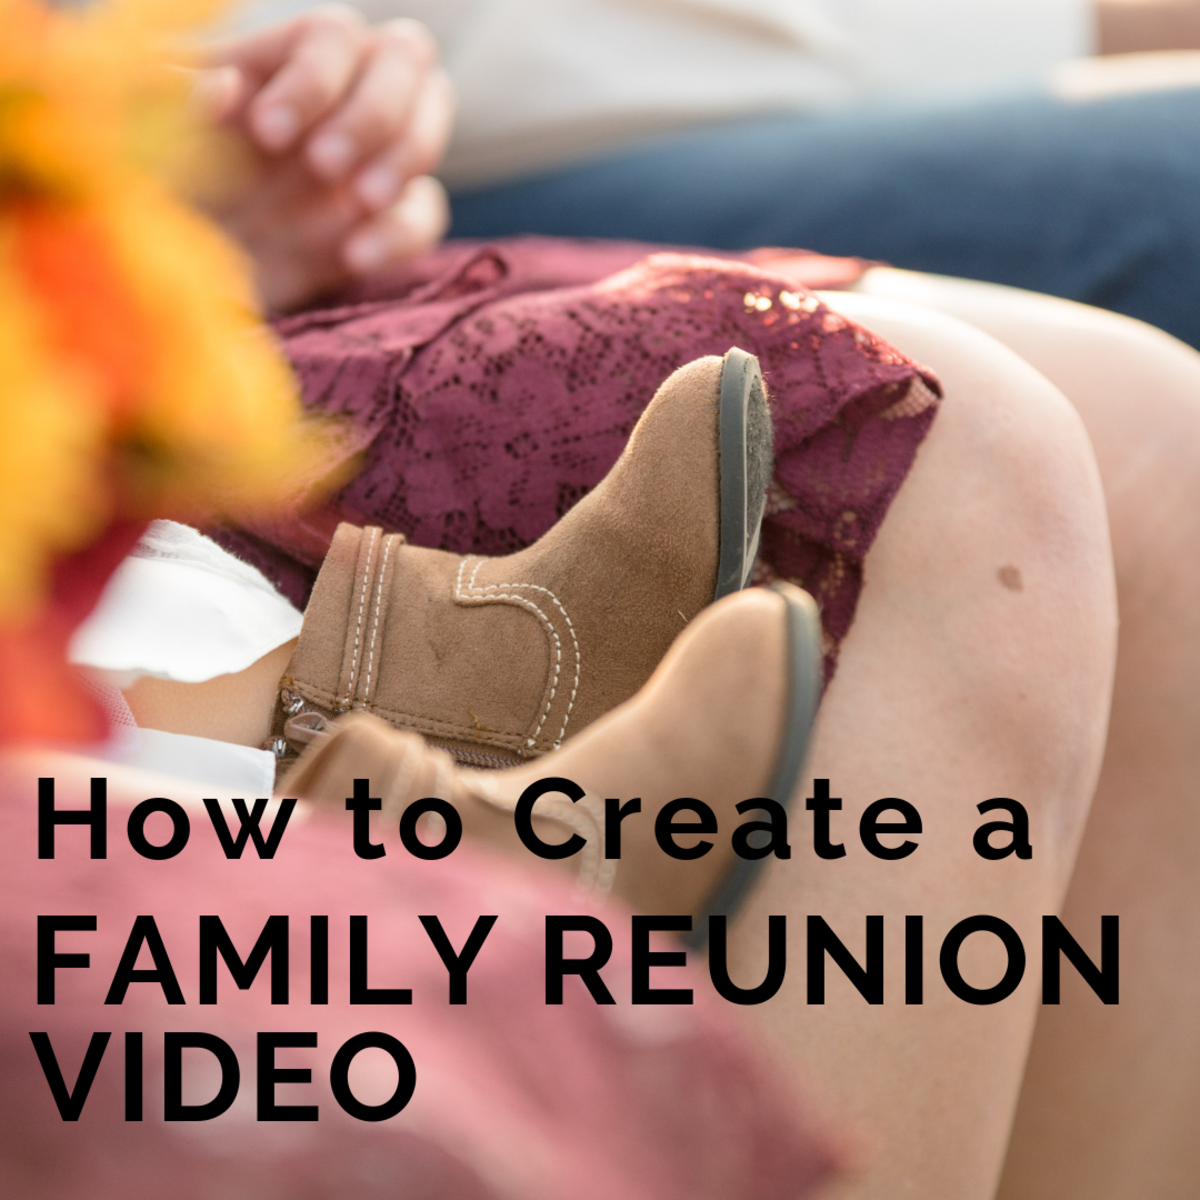 How to Create a Family Reunion Video